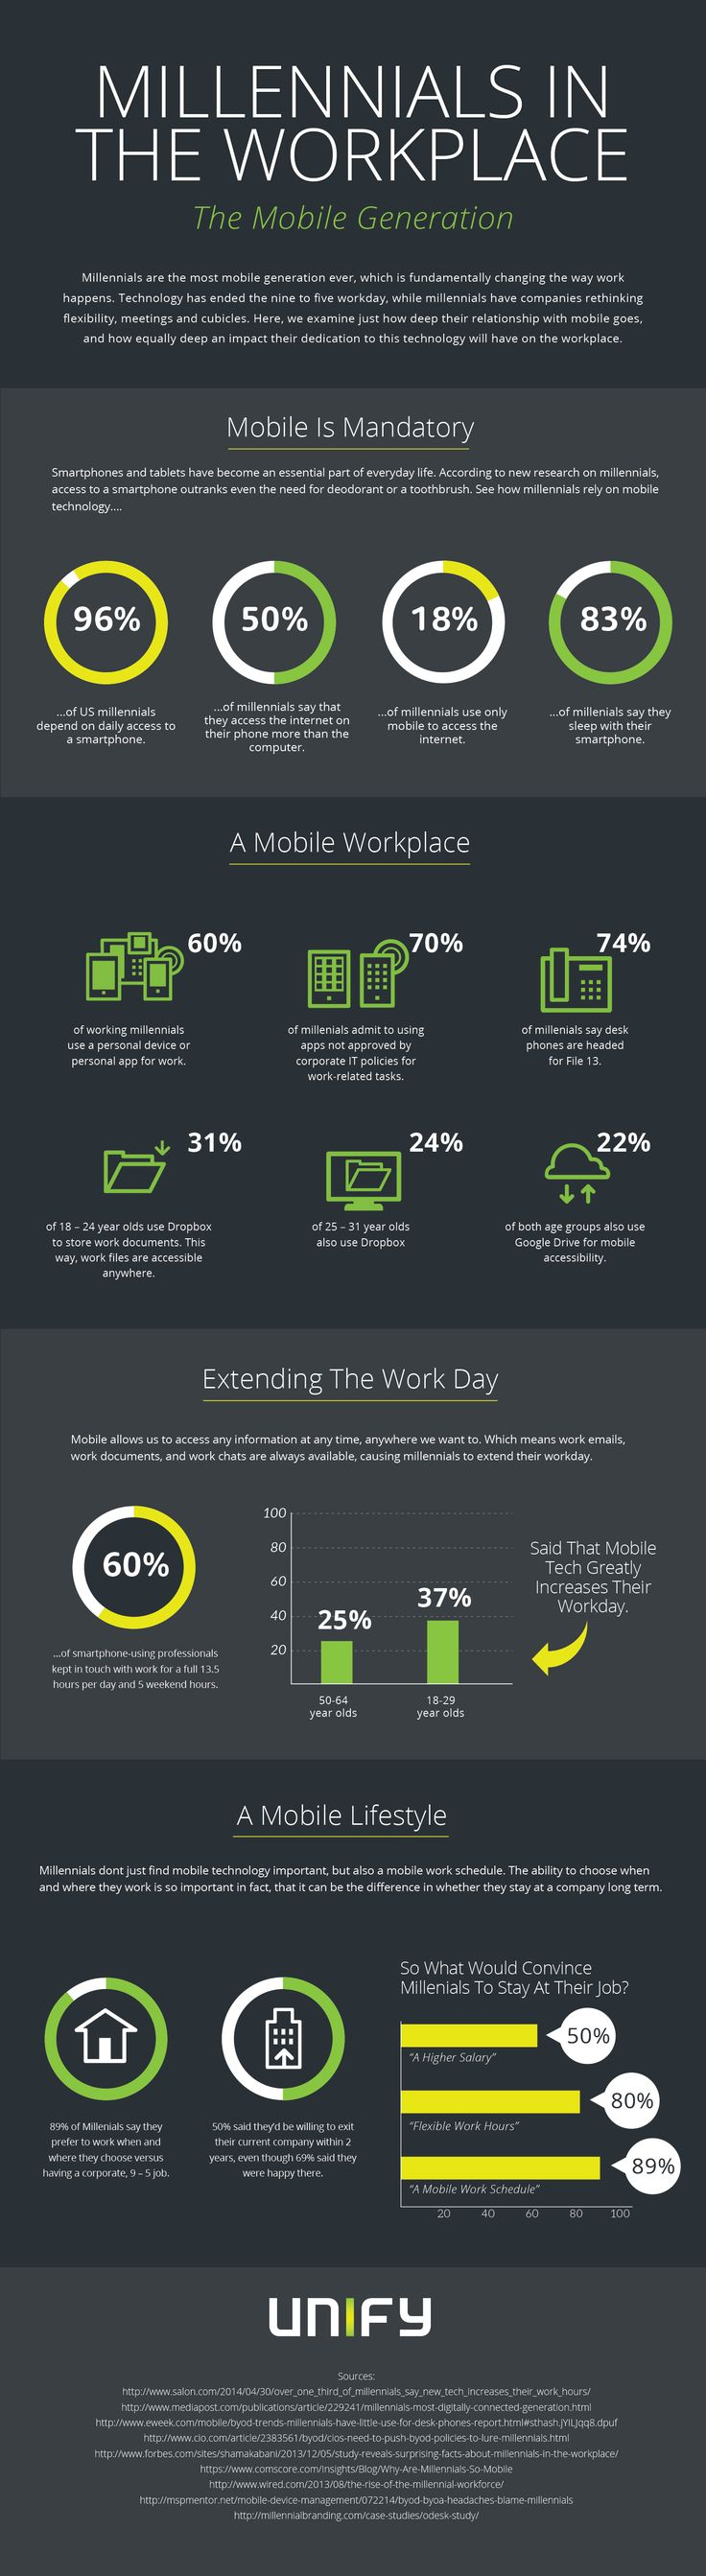 Millennials in the Workplace the Mobile Generation [Maybe I'm more of a Millennial than I'd thought... -JC]